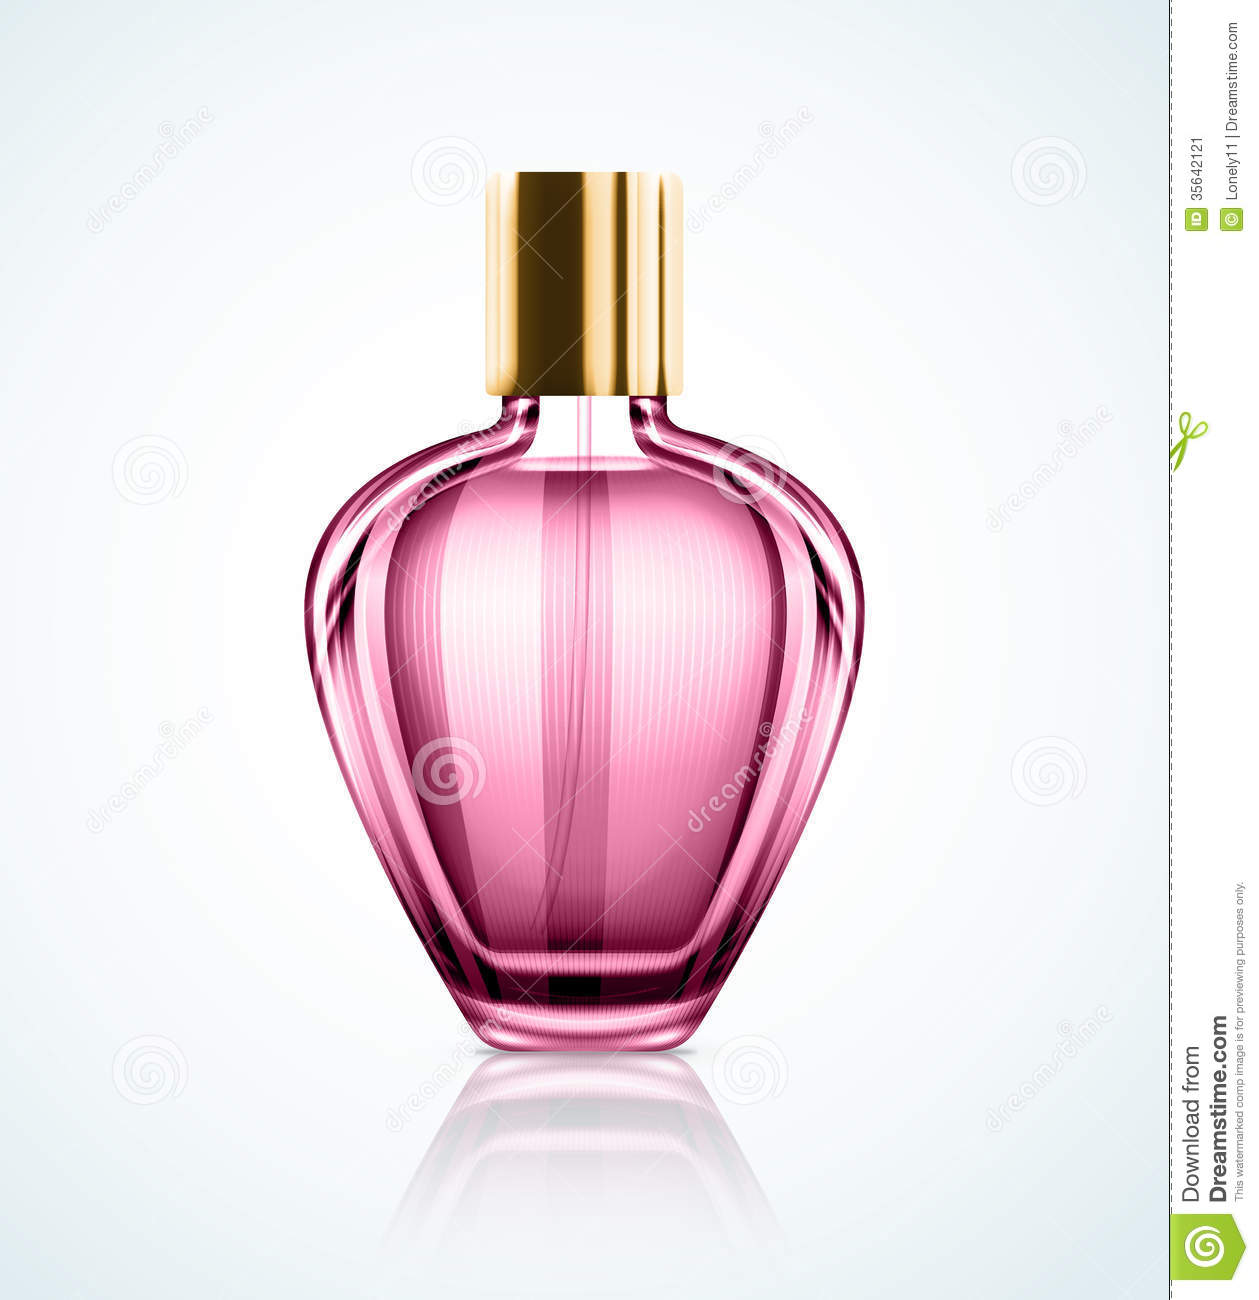 Launched by the design house of Alfred Sung in , JEWEL is a women's fragrance that possesses a blend of black currant, jasmine, and pear. It is recommended for romantic zooland-fm.ml applying any fragrance please consider that there are several factors which can affect the natural smell of your skin and, in turn, the way a scent smells on you.